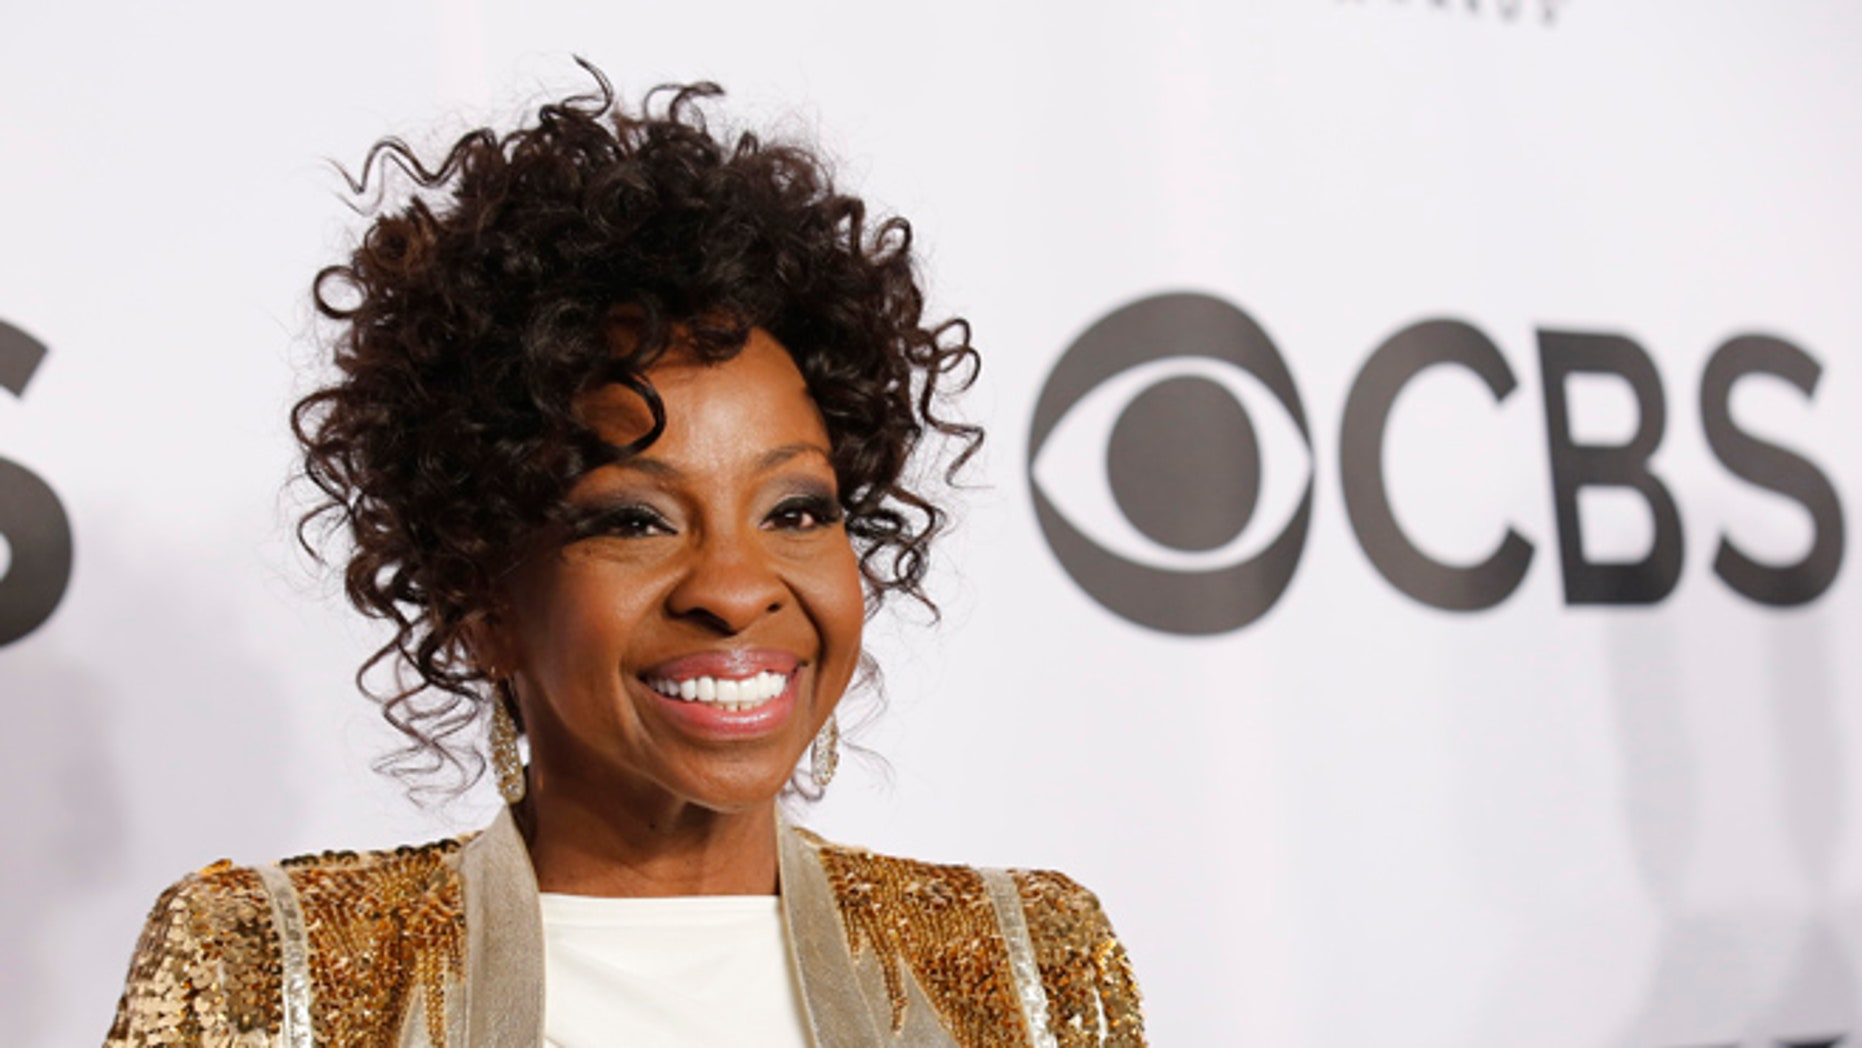 Gladys Knight has started a fundraising campaign for a community center in North Carolina.